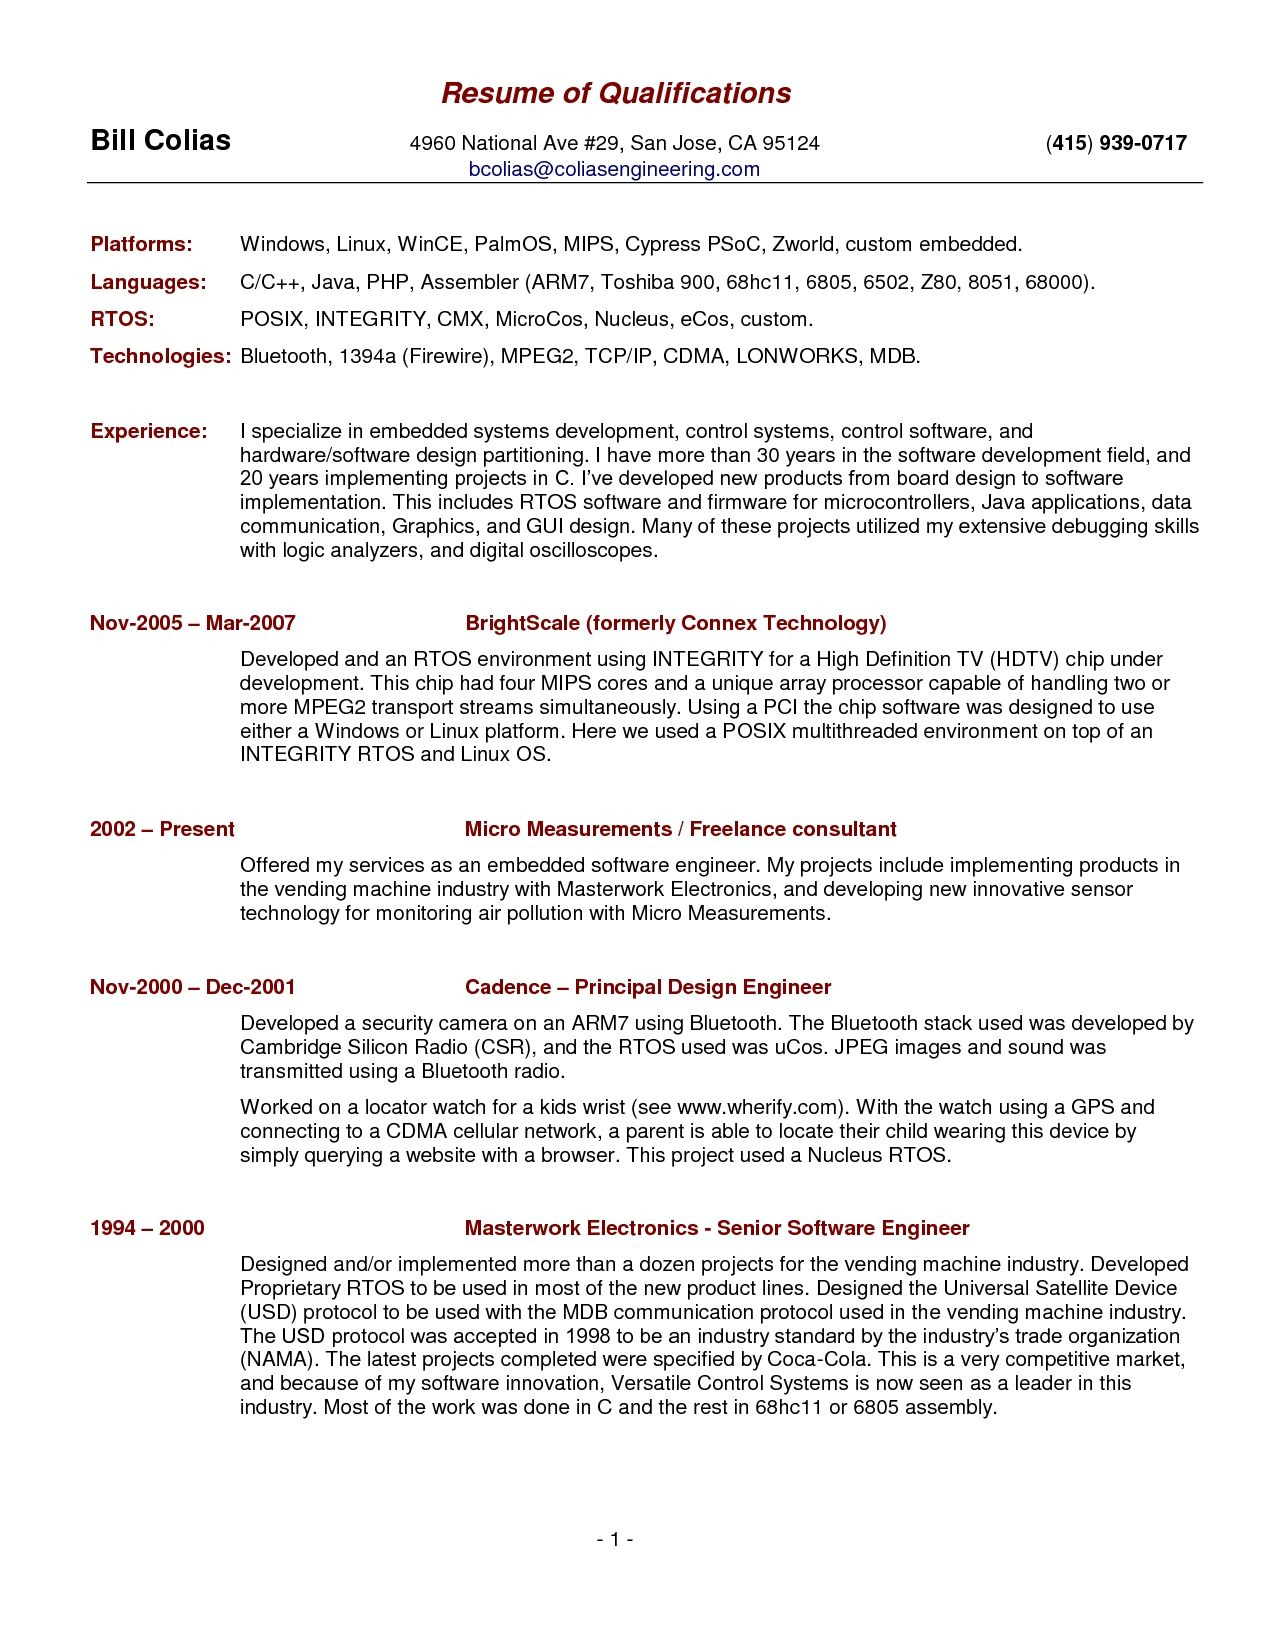 Describe Your Computer Skills Resume Sample - Free Resume Template Summary Qualifications